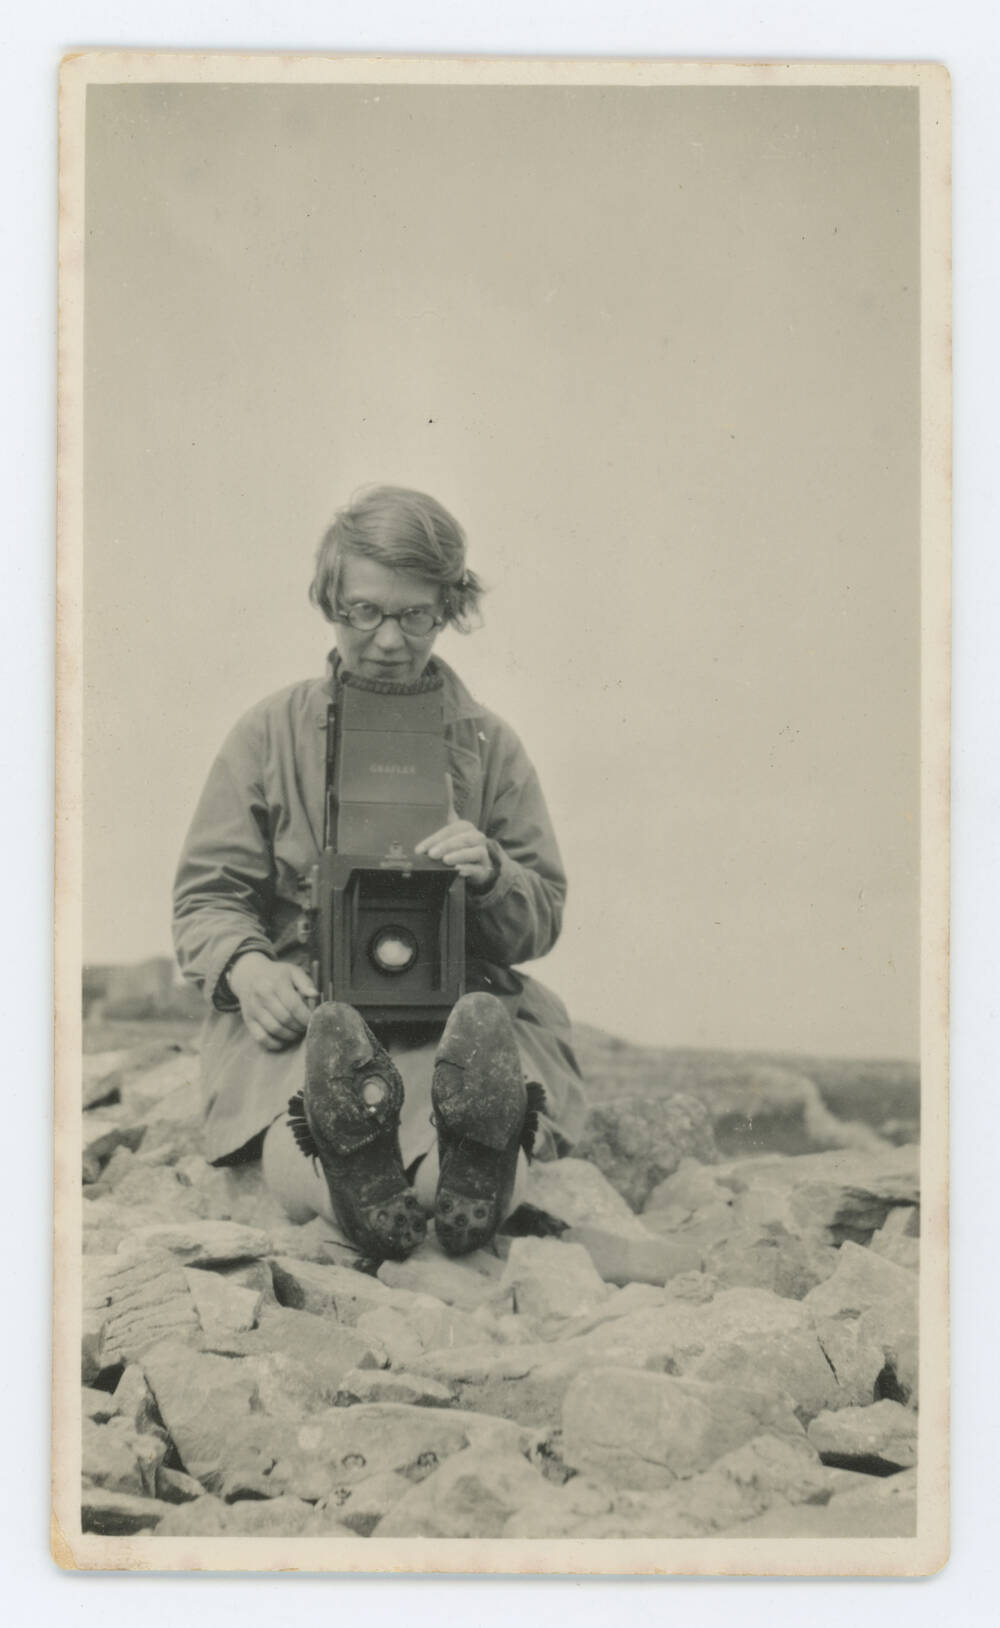 Margaret with her Graflex camera. Inishmore, 1929. This object, along with the rest of the collection, is stored at Canna House, Margaret's home on the Isle of Canna